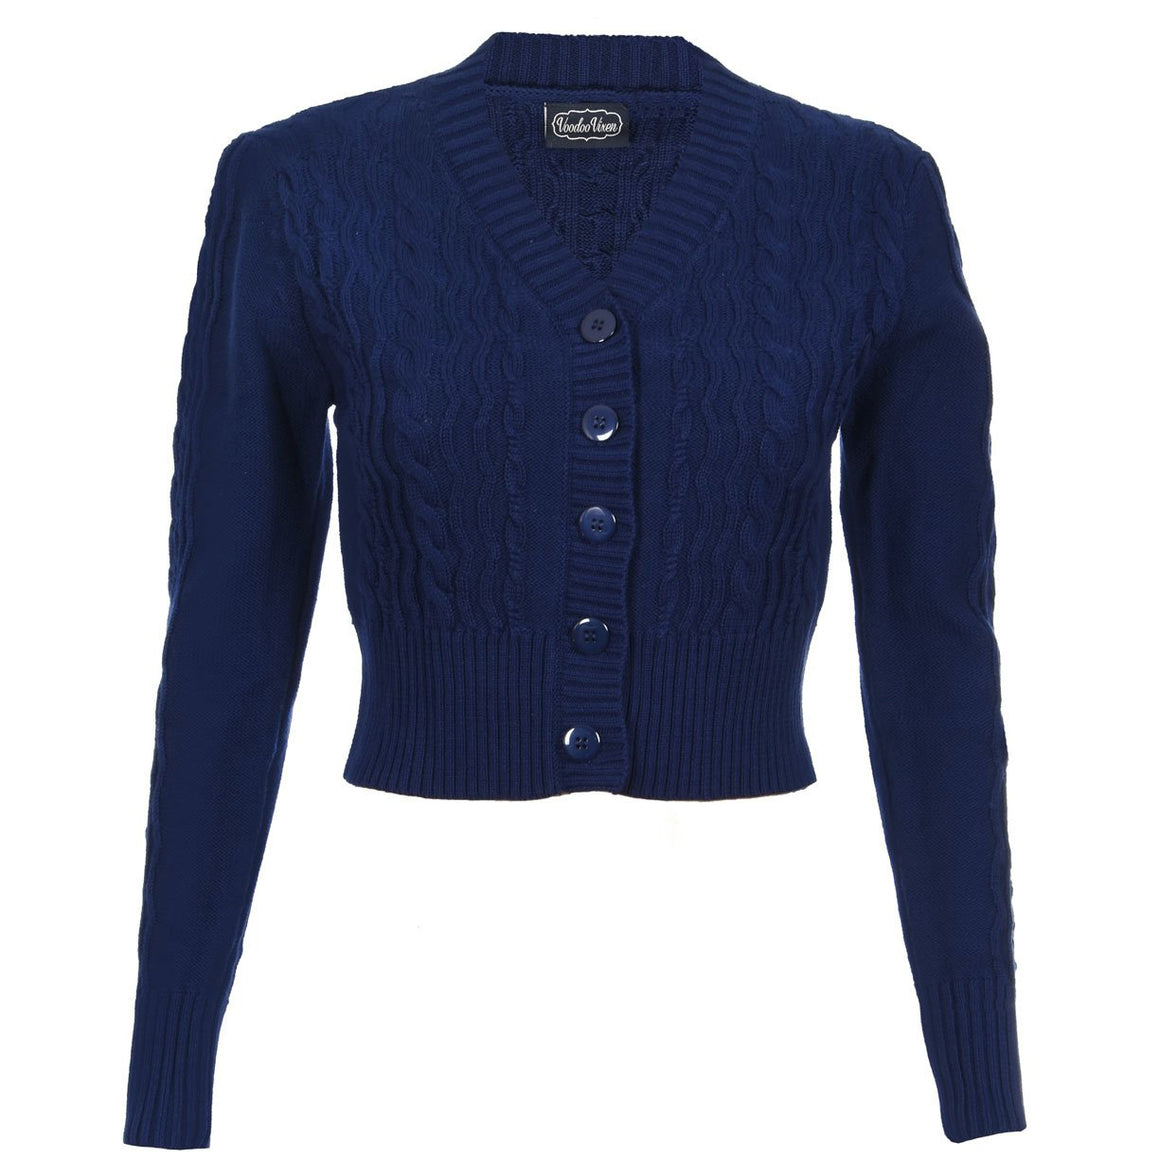 Navy Blue Cropped Vintage Knit Cardigan